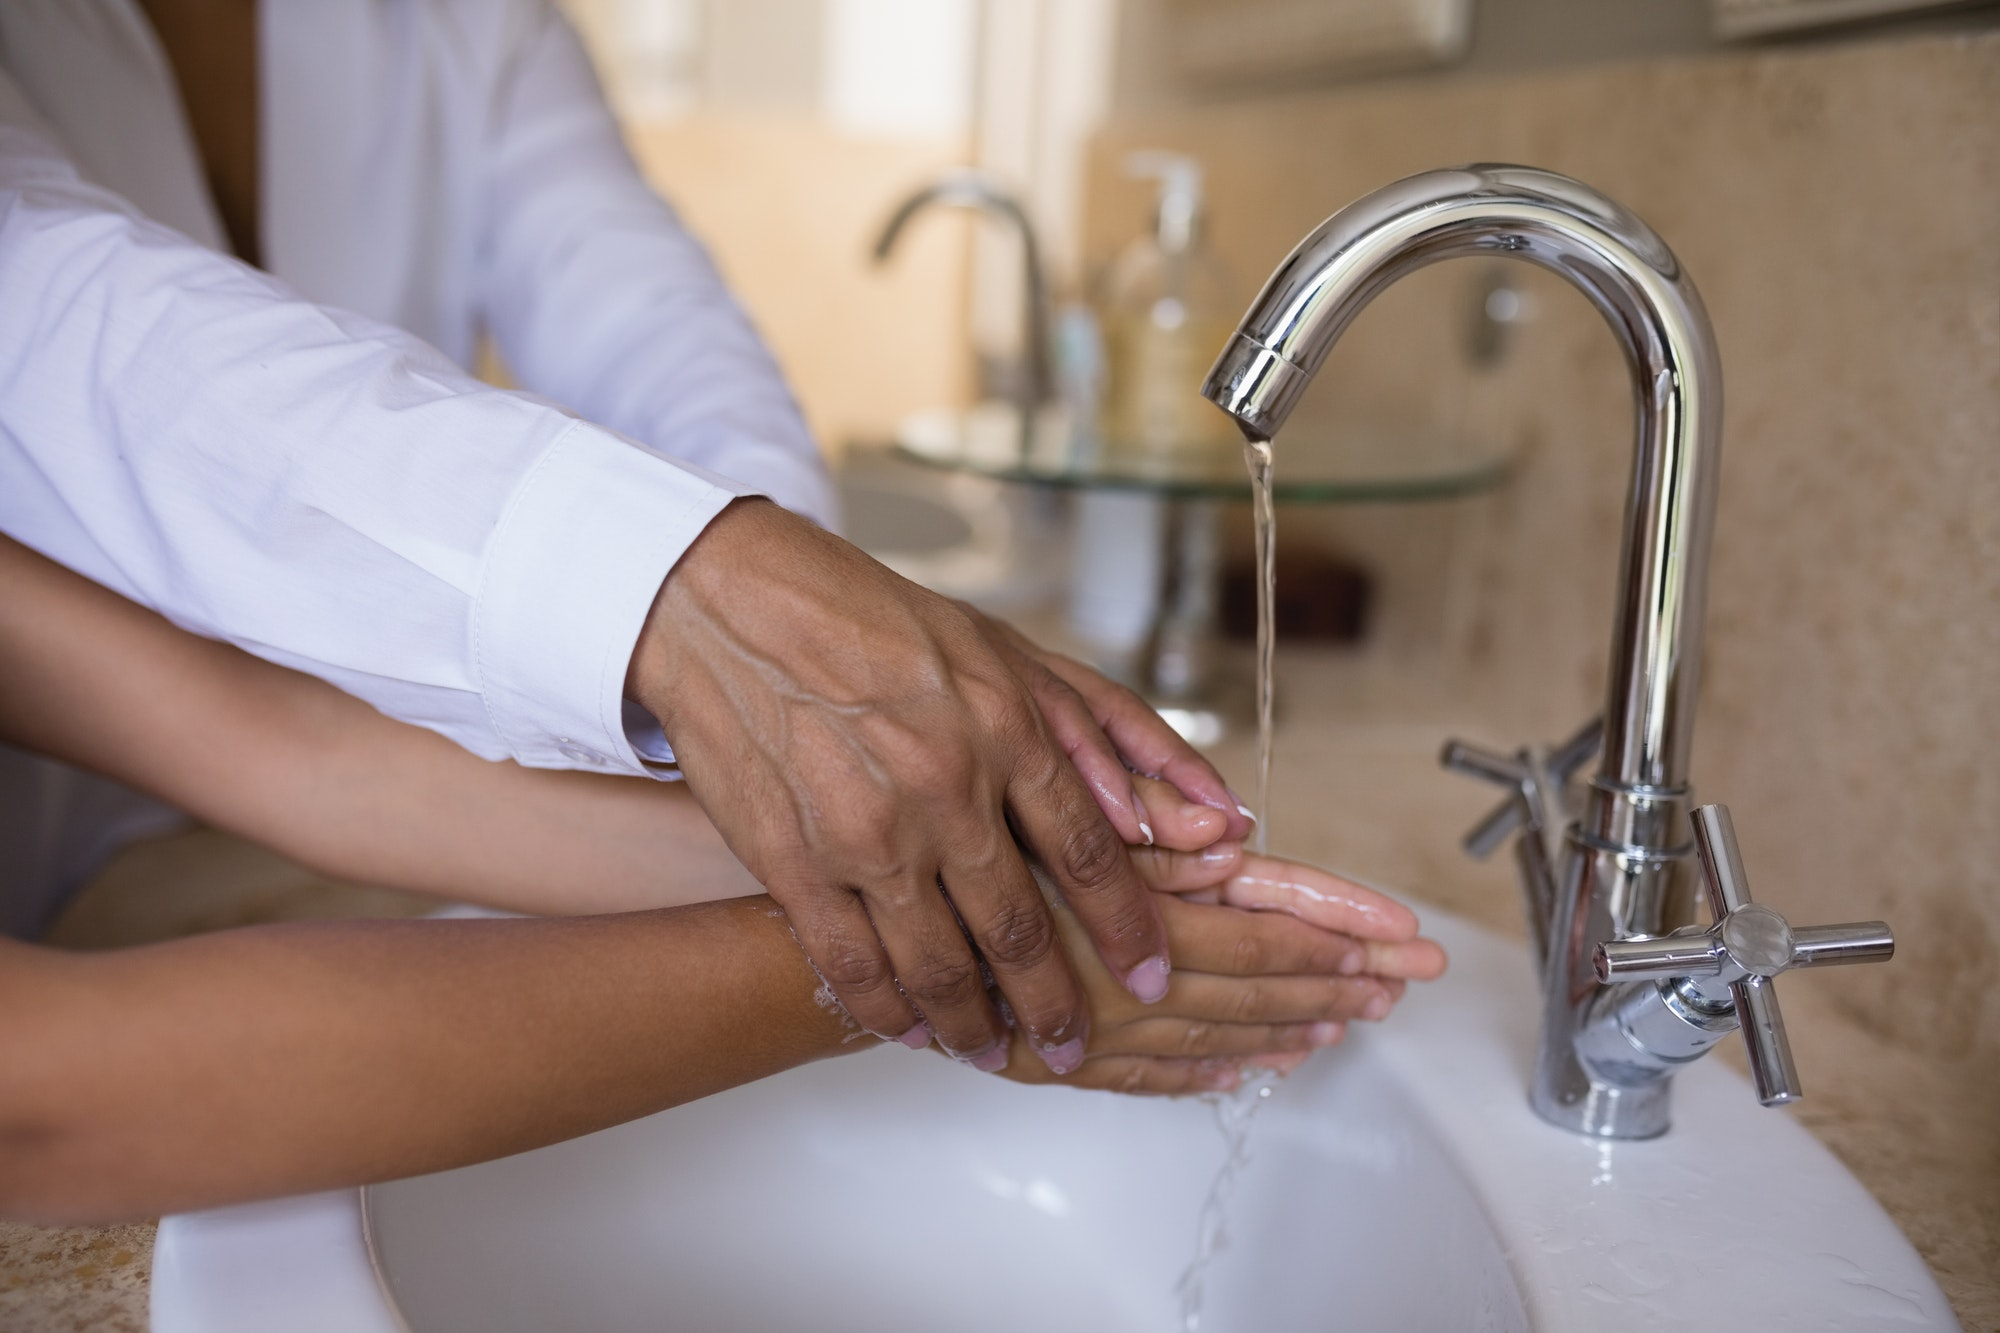 Mid section of granny helping girl while washing hands at sink